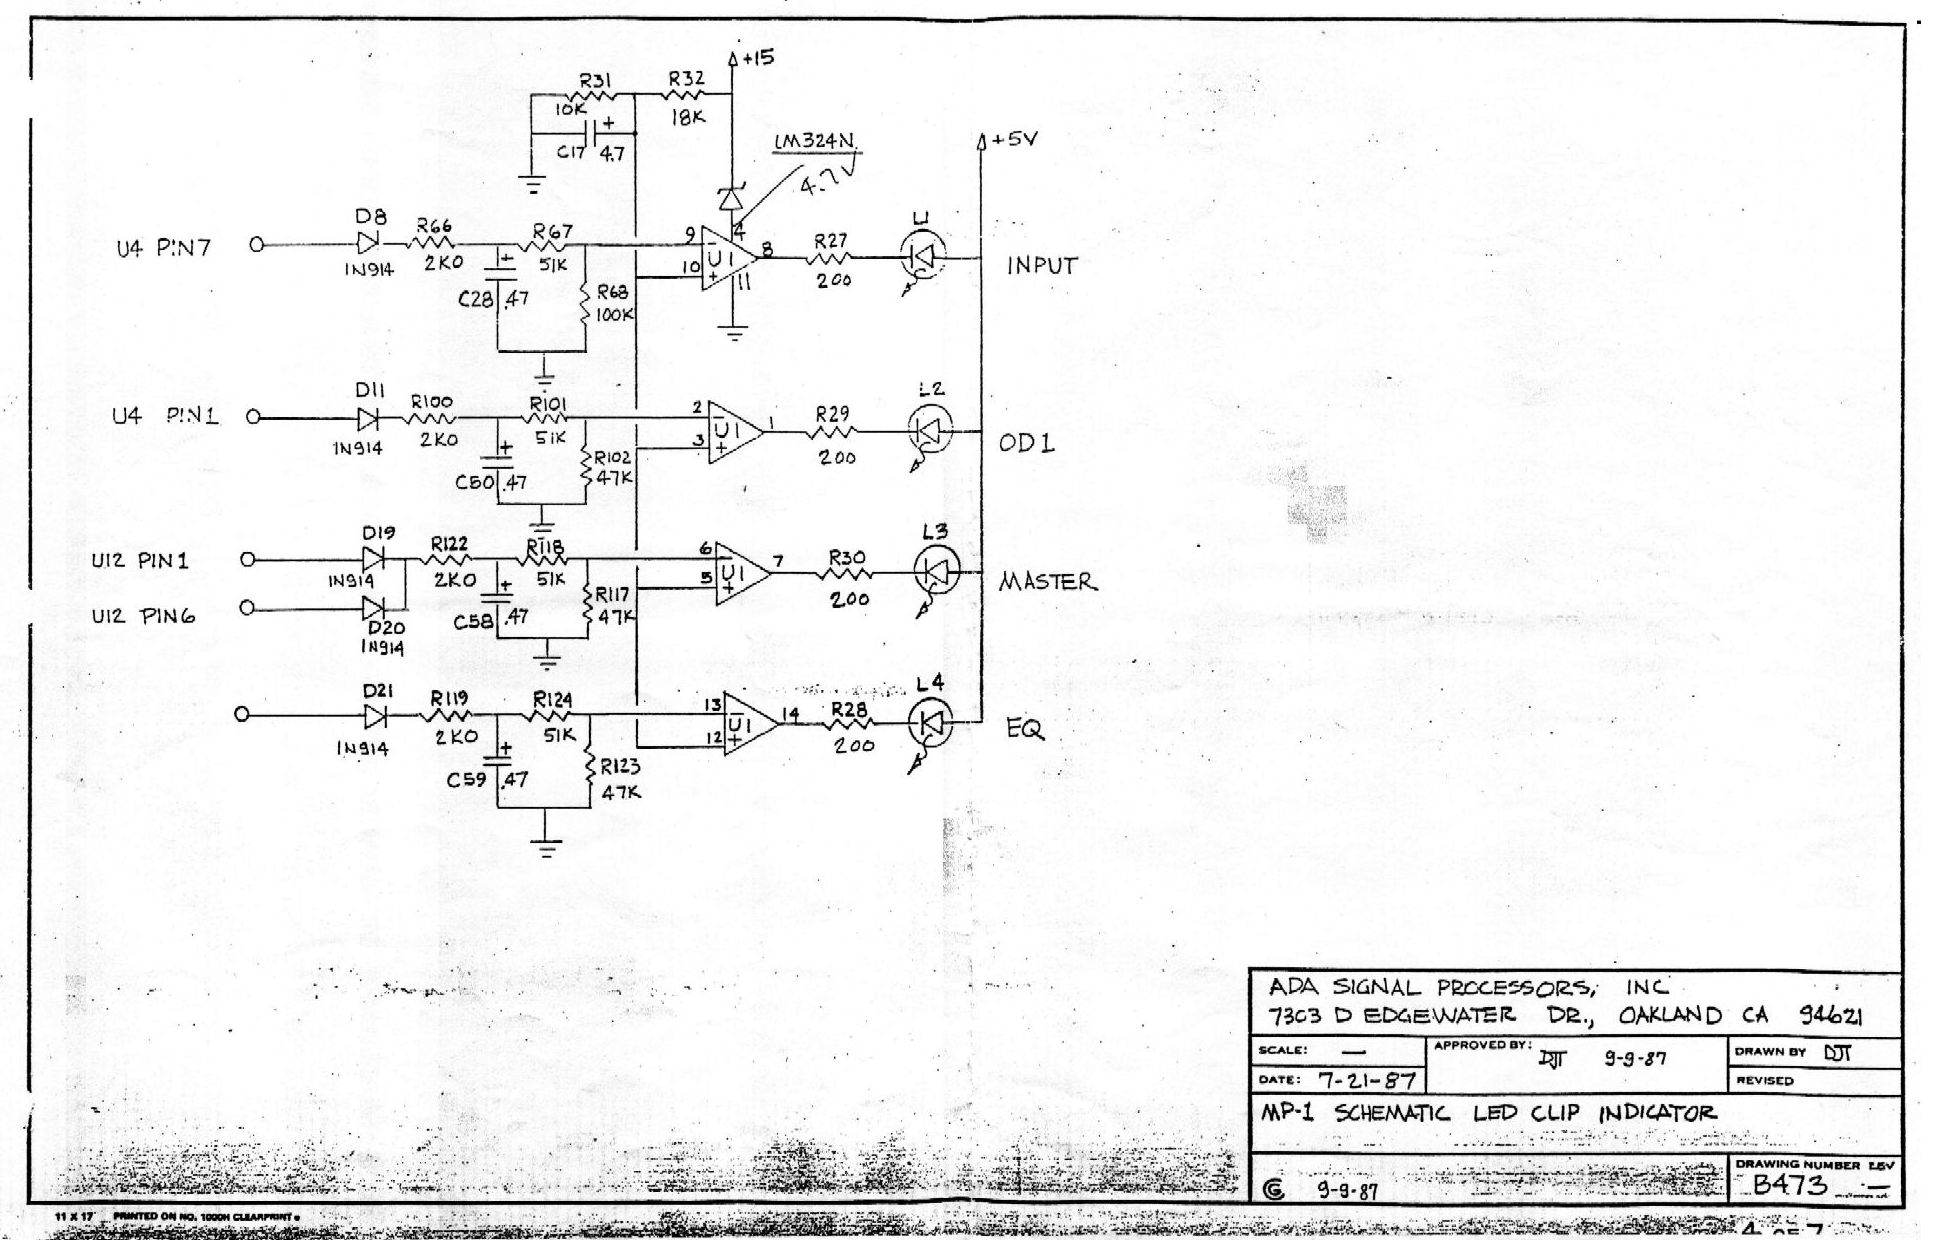 Carvin Ts100 Schematic Legacy A Bx500 And The Tech Would Probably Have Hard Time Just Finding Manual Author Dahlia Maria Country Montserrat